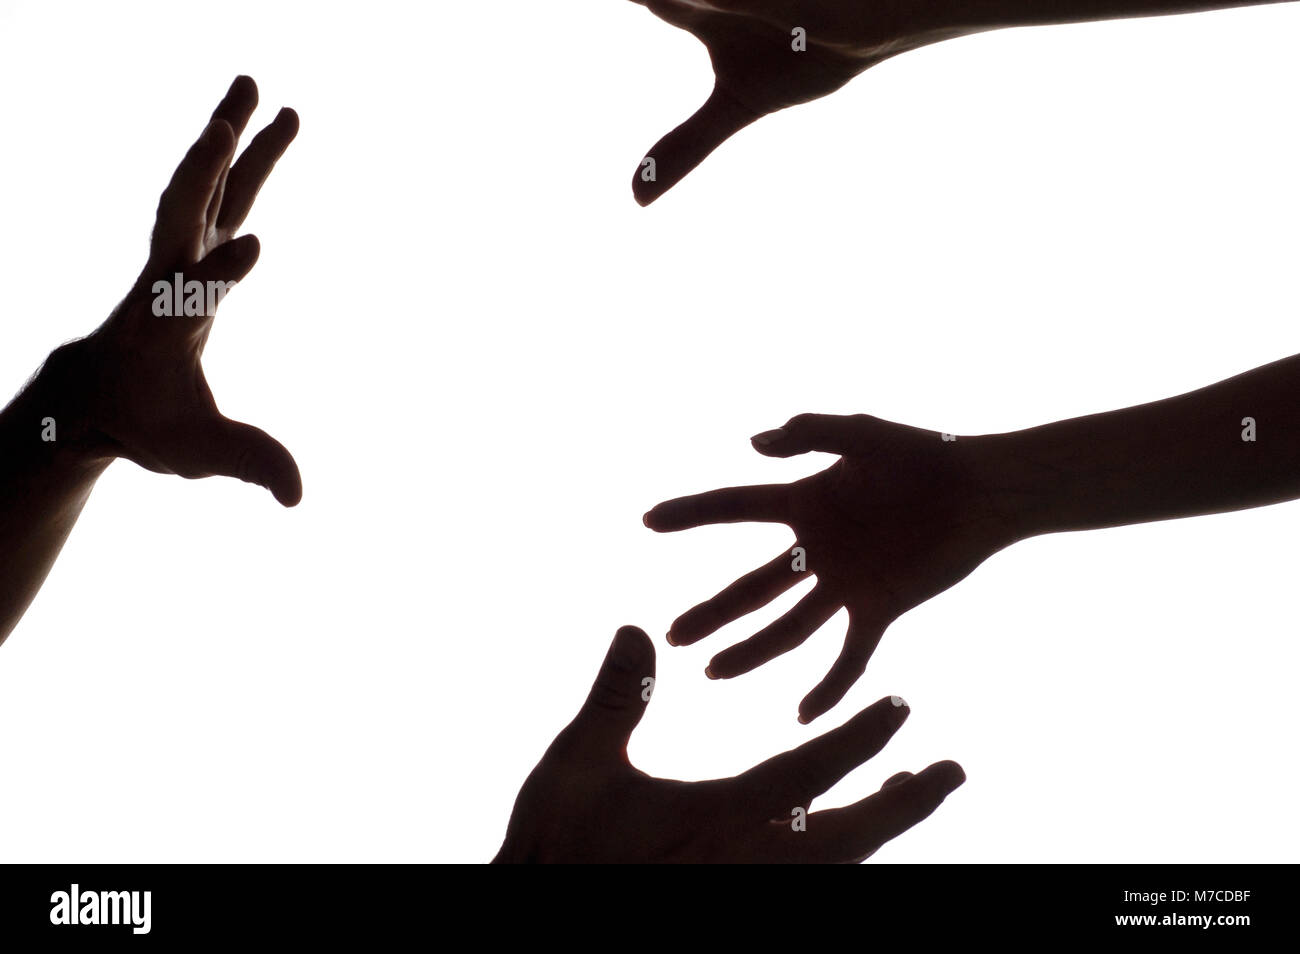 Close-up of a woman's hands reaching for a man's hands - Stock Image